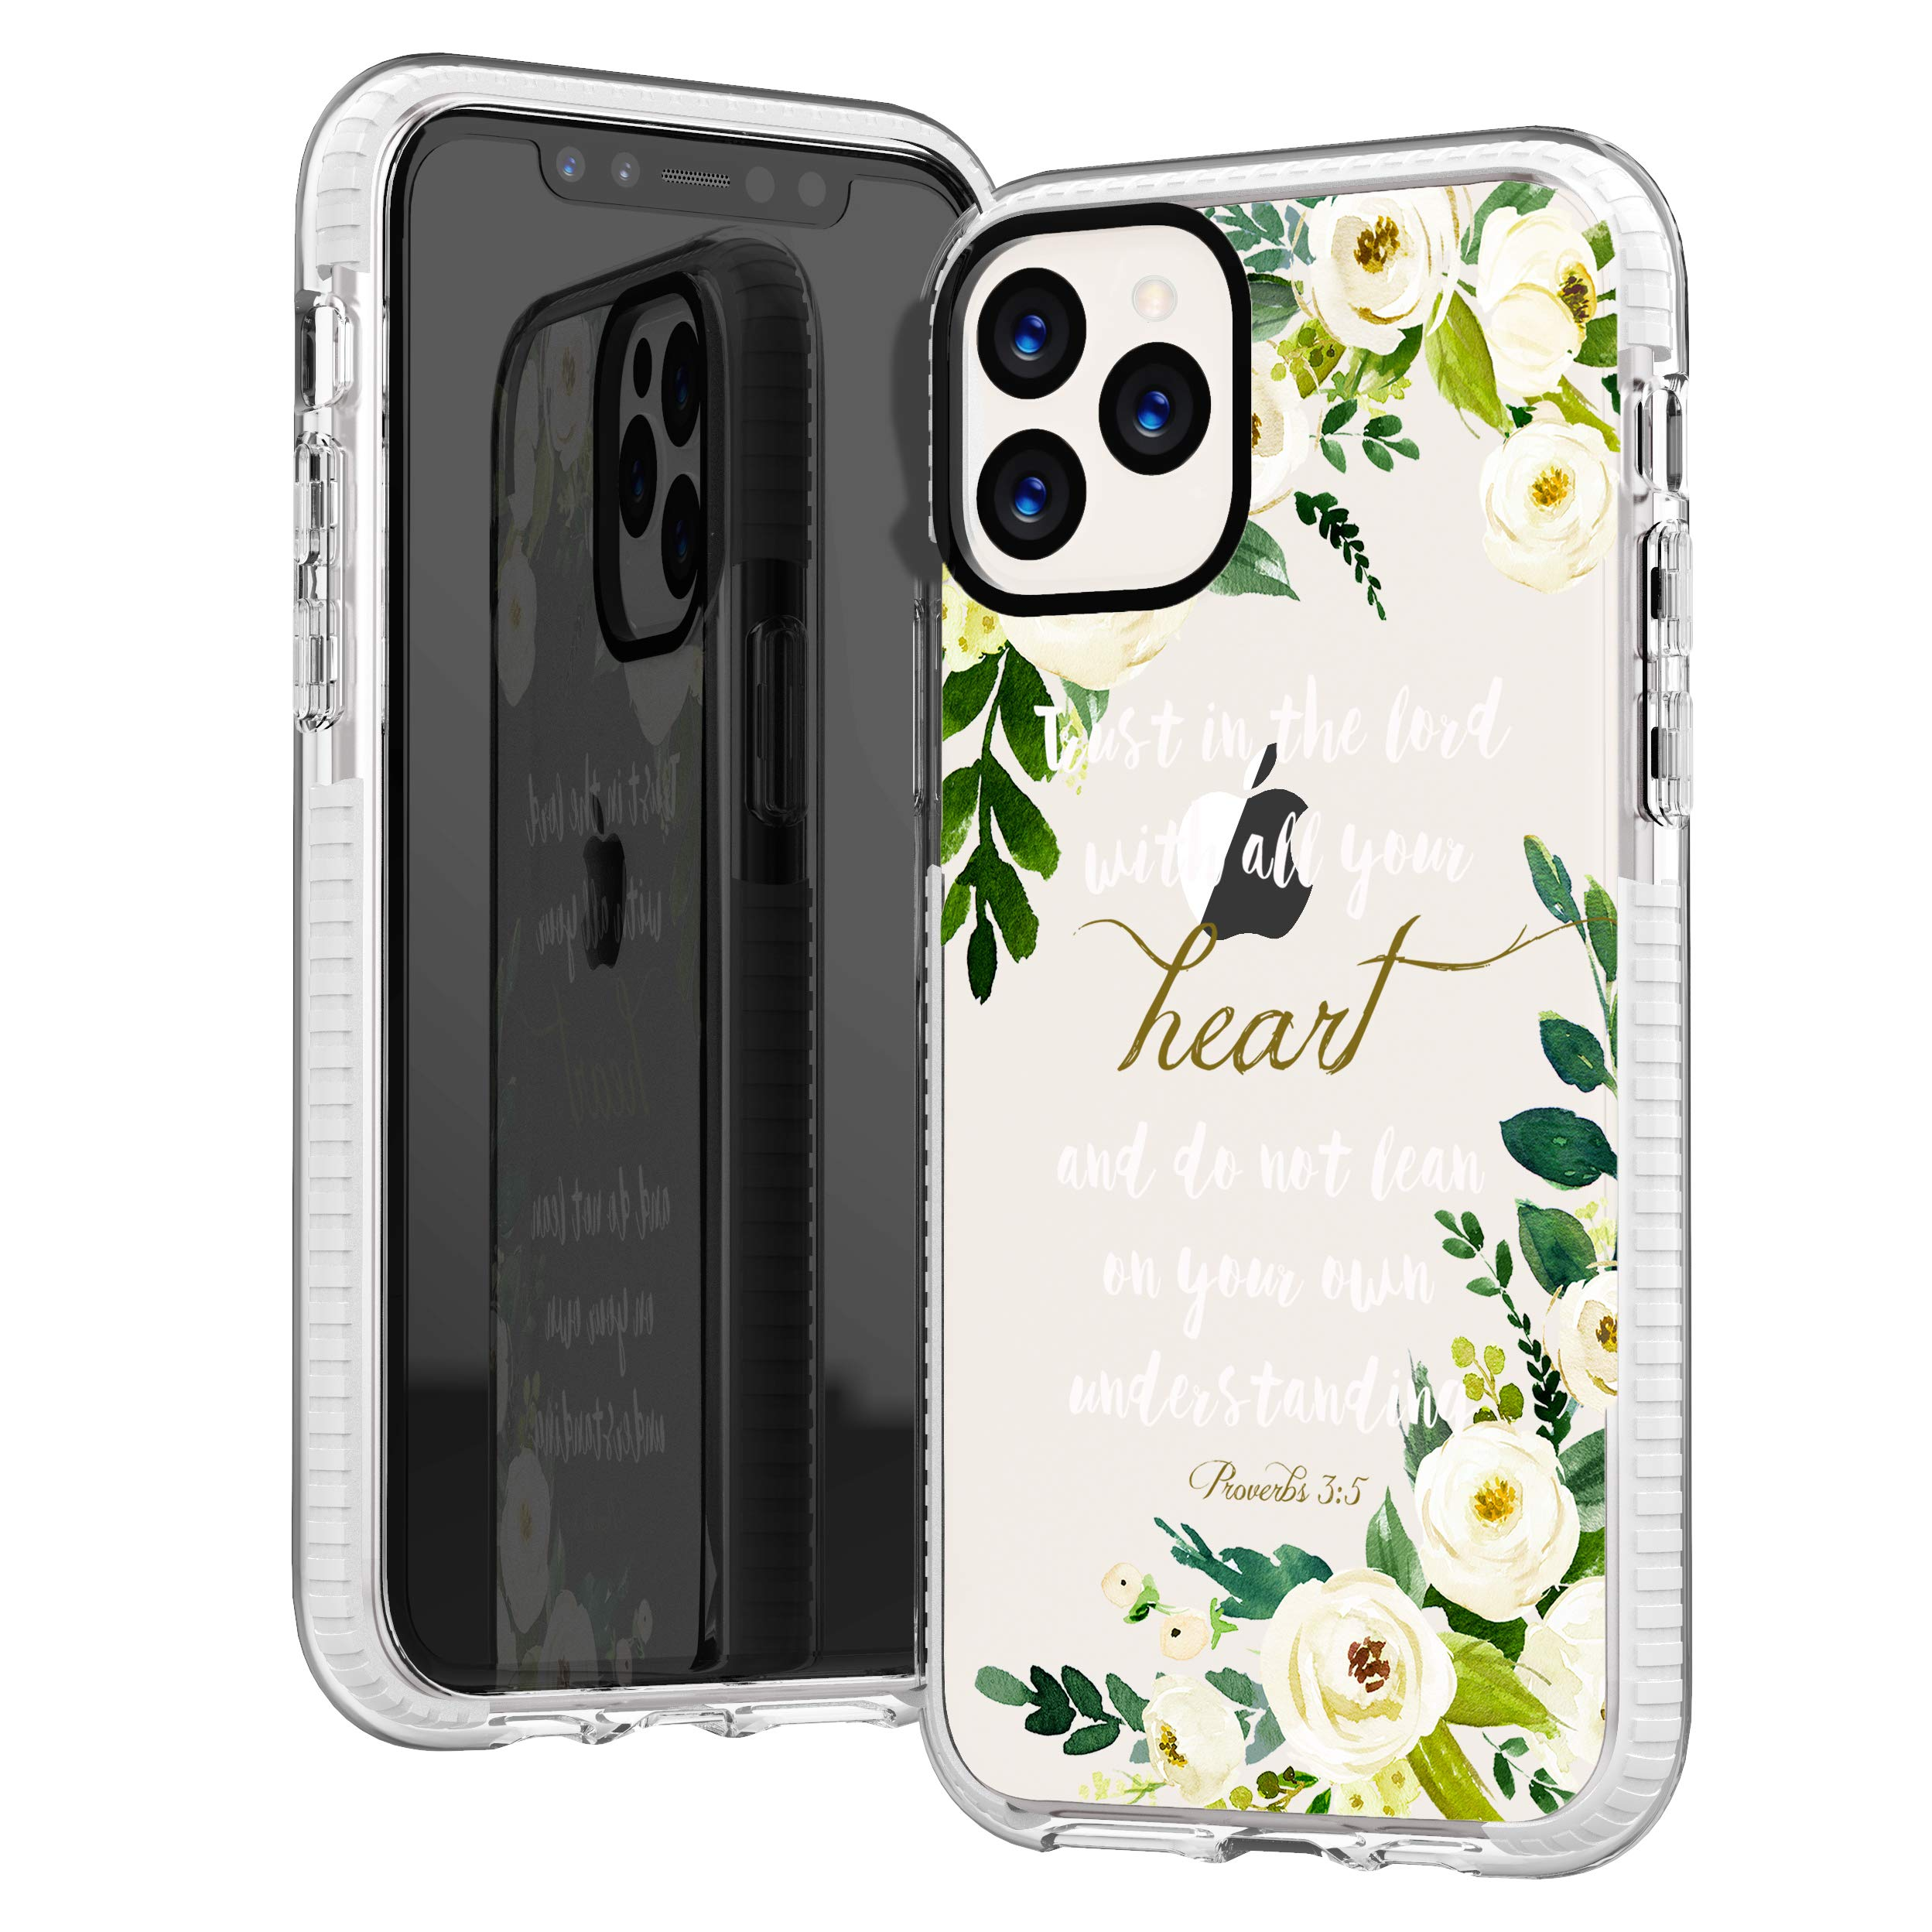 iPhone 11 Pro Max Case,Cute Bible Verses Quotes Flowers Florals White Roses Christian Proverbs 3:5 Inspirational Girls Women Soft Protective Clear Case with Design Compatible for iPhone 11 Pro Max